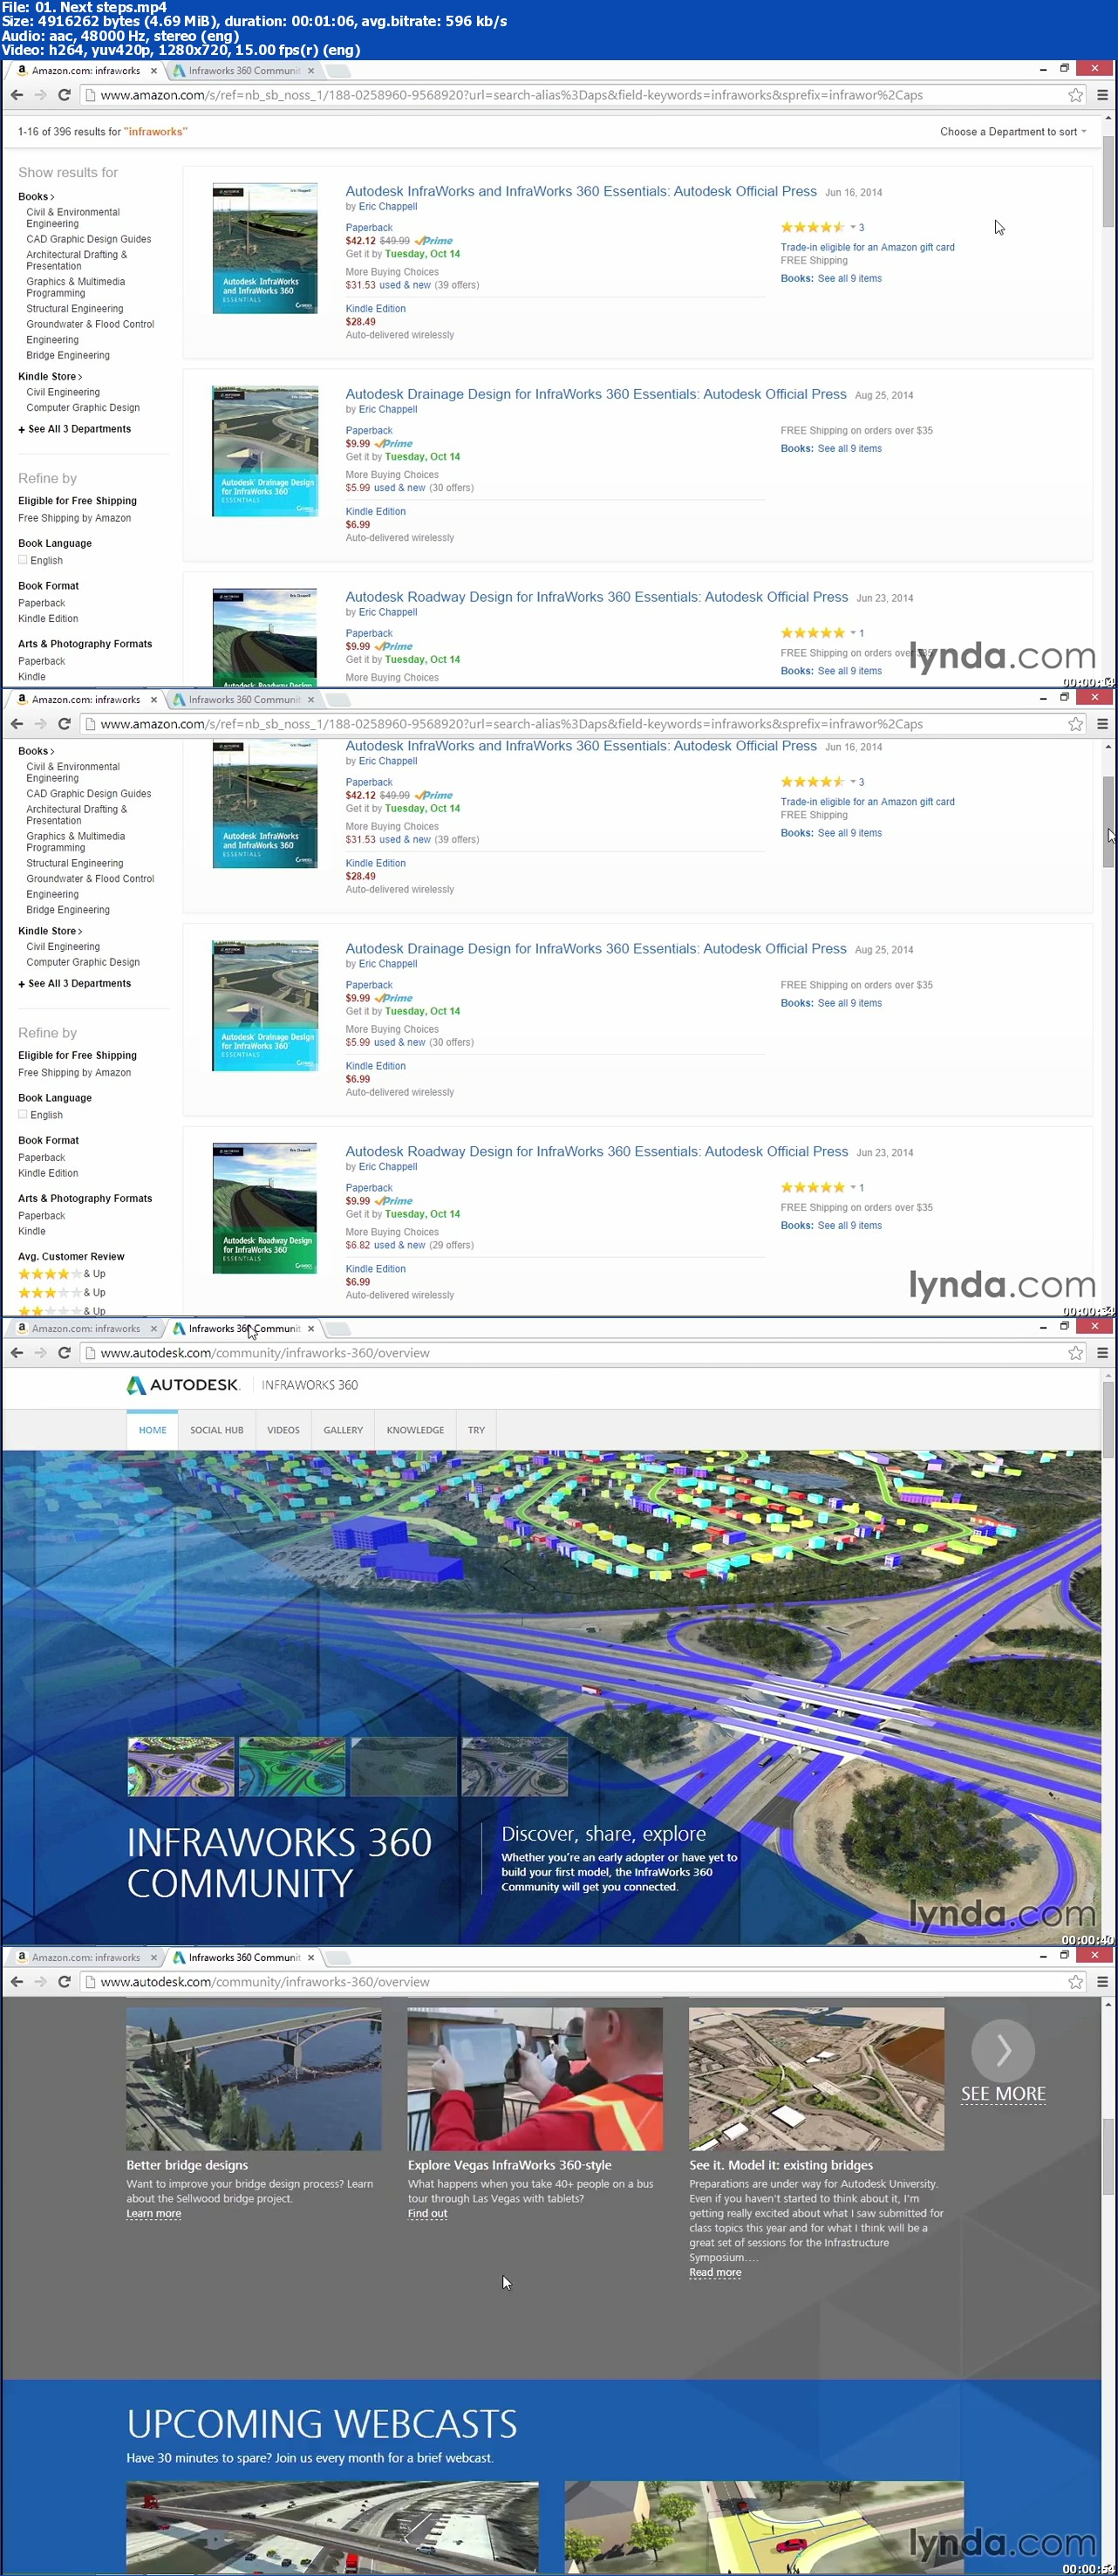 Lynda - Up and Running with InfraWorks